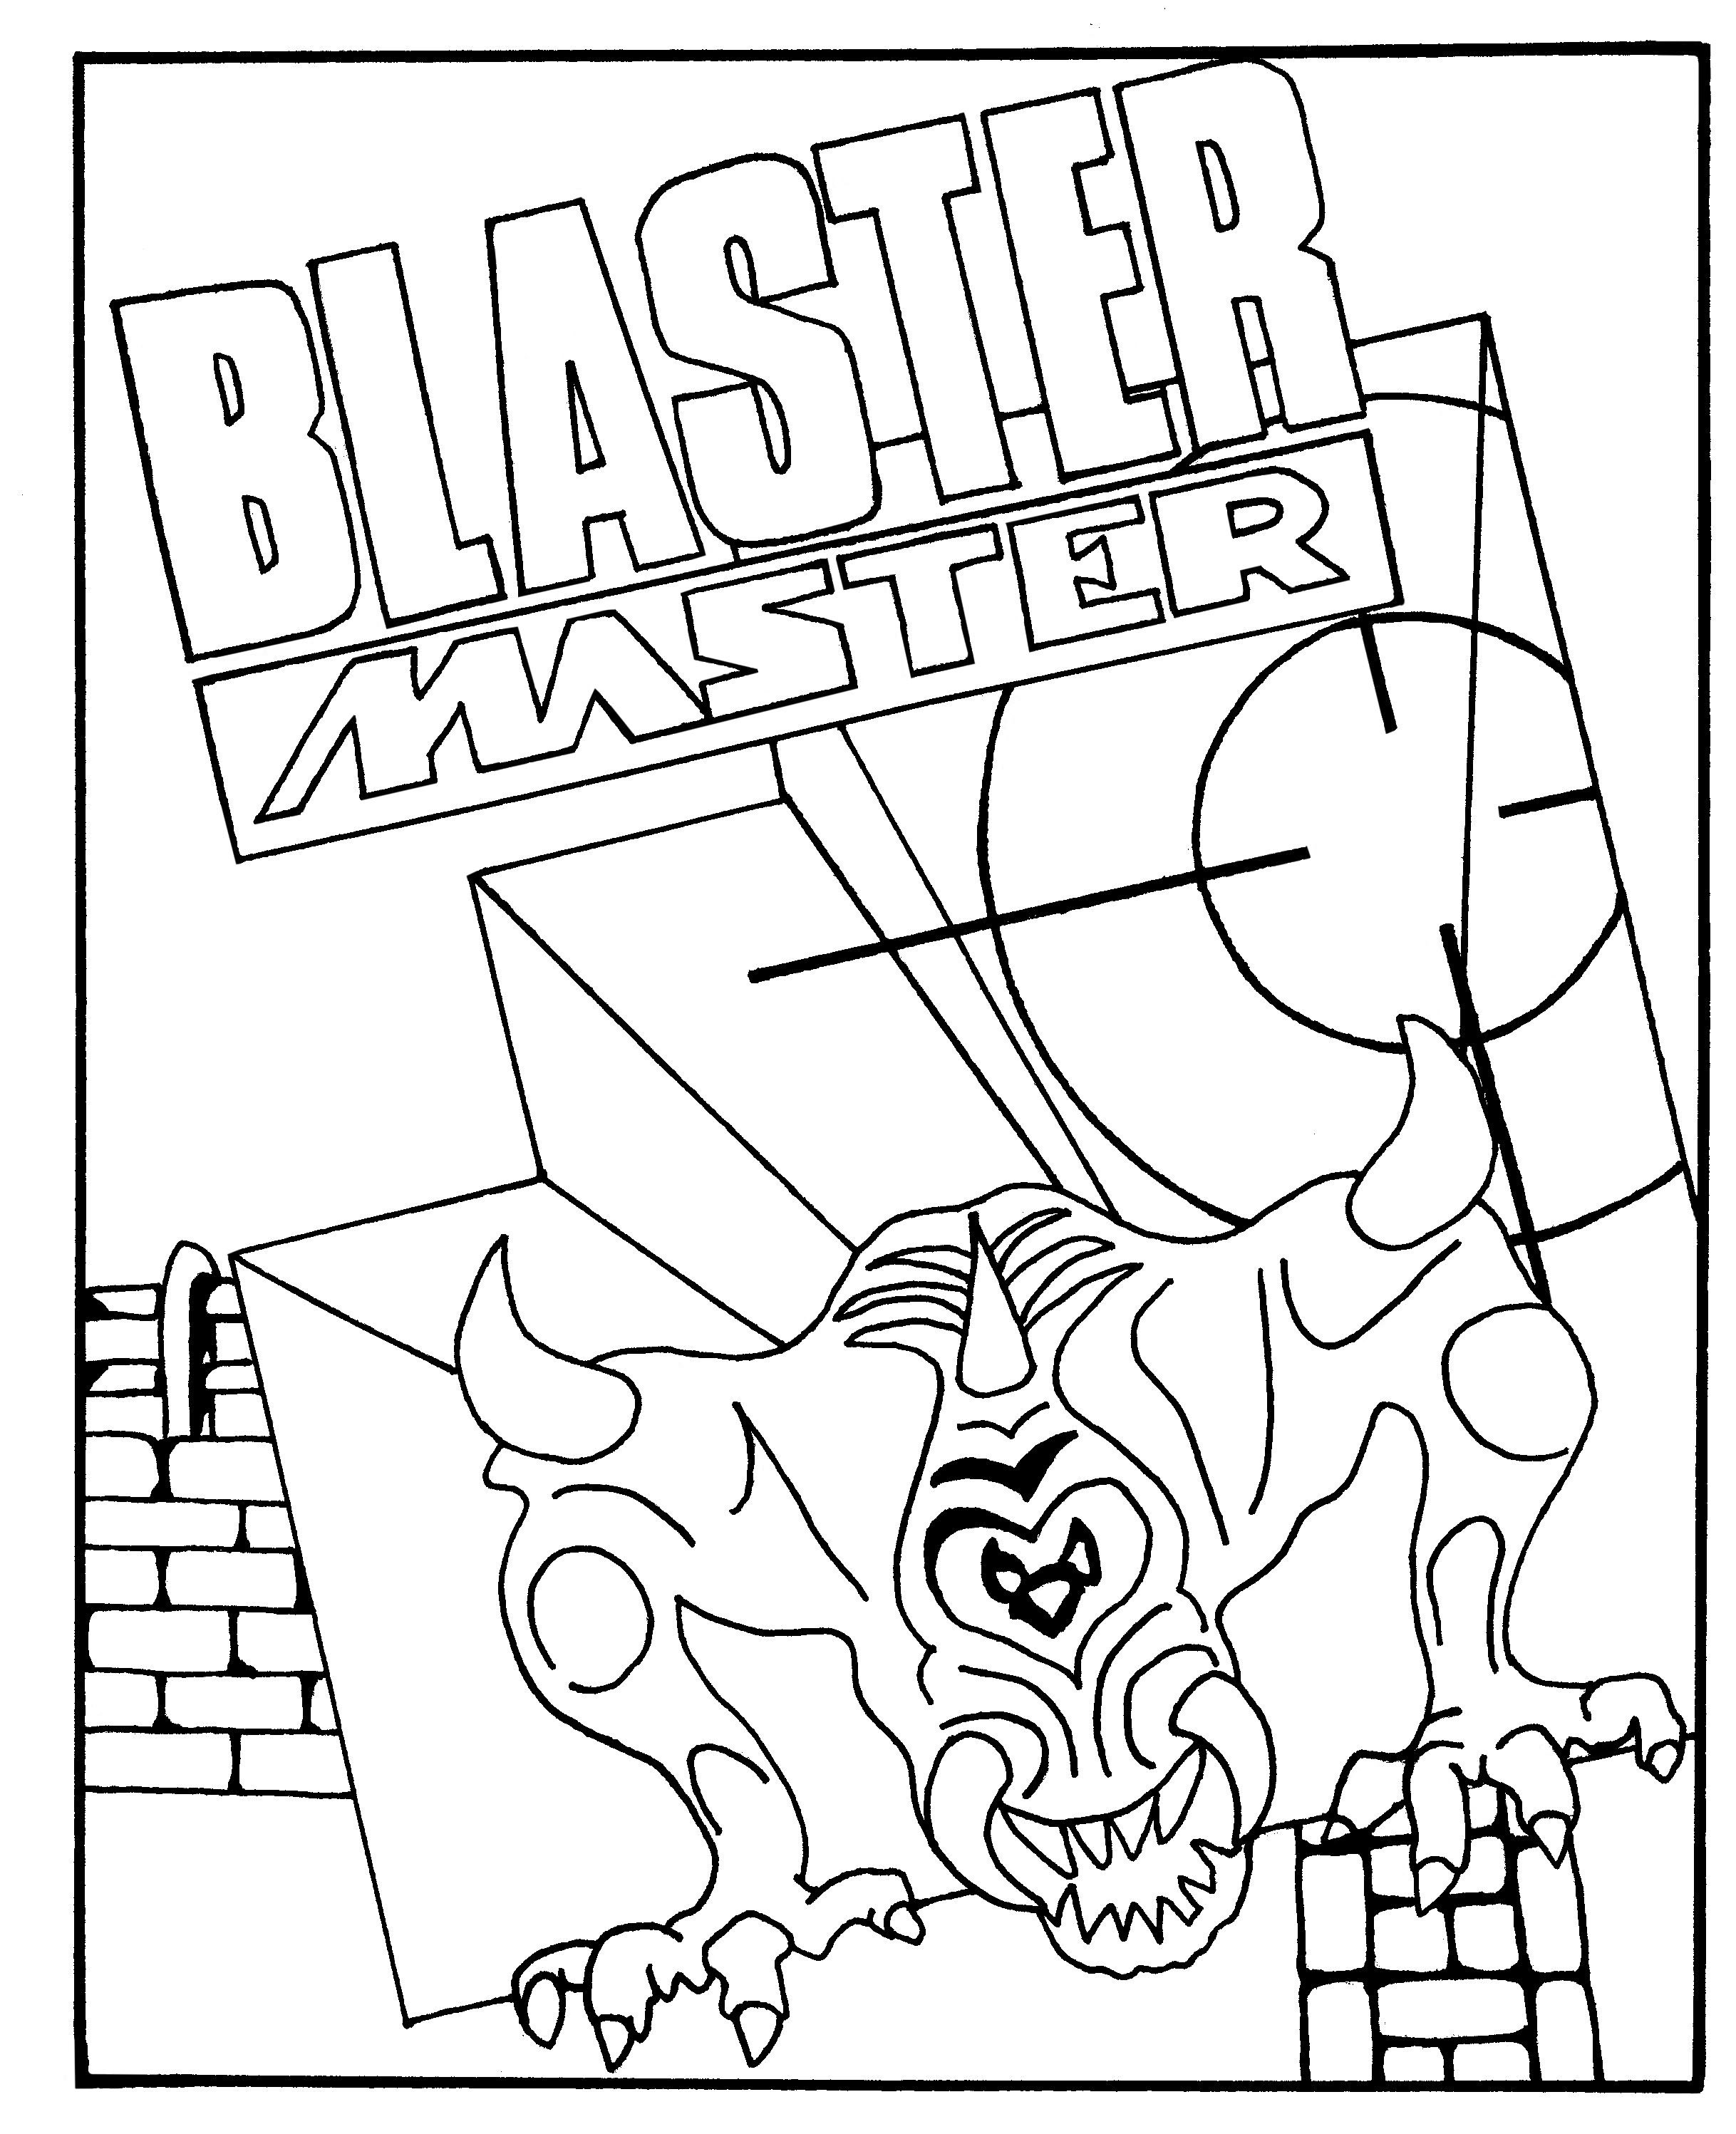 ganondorf coloring pages - photo#32